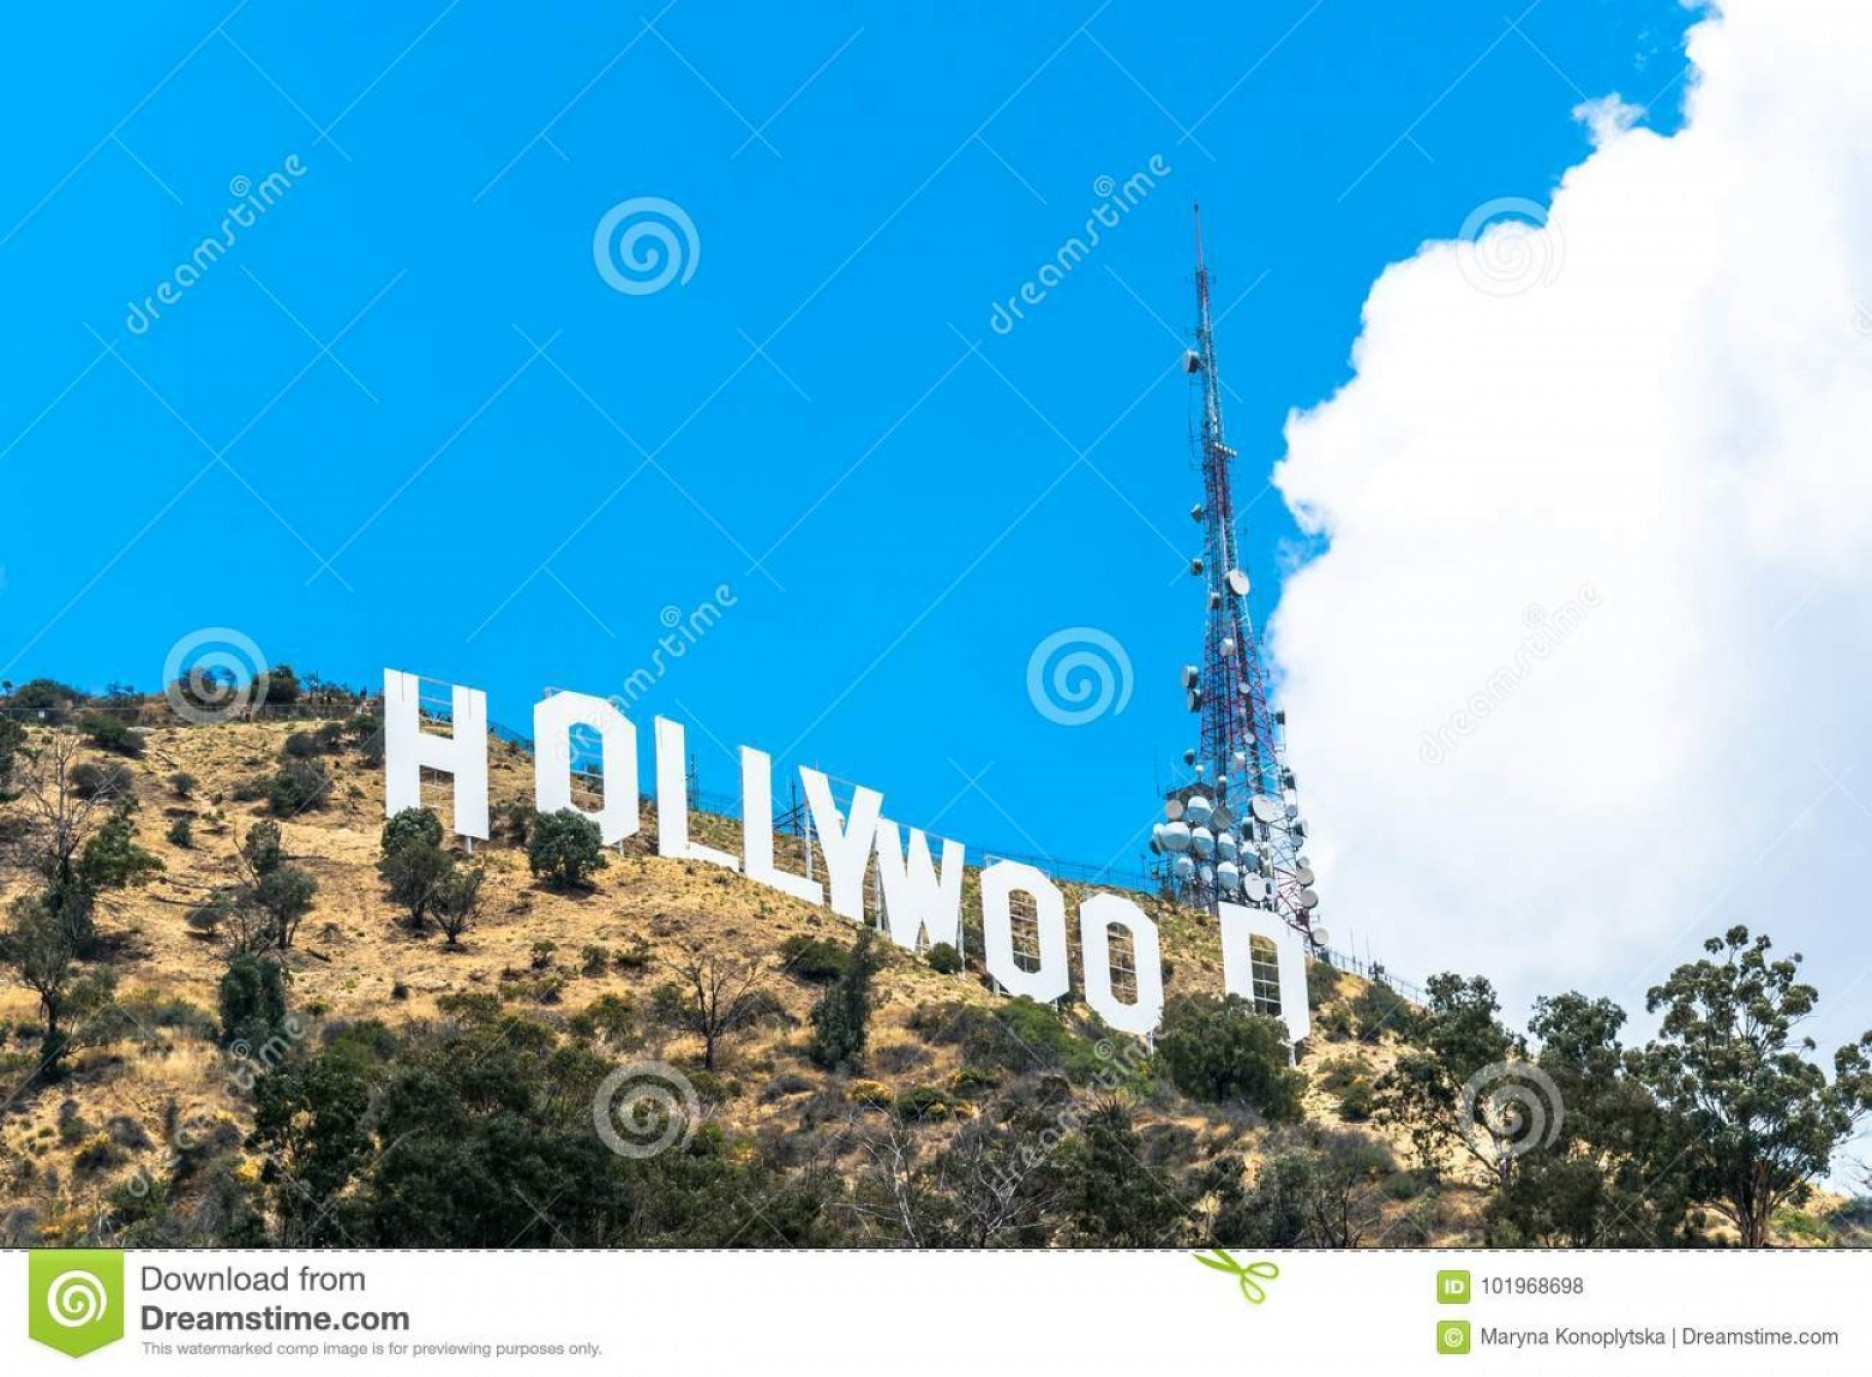 Hollywood Hills Vector: Sunny Hollywood Hills California Attractions Los Angeles Usa March Famous Symbol City Inscription Tourist Attraction Image